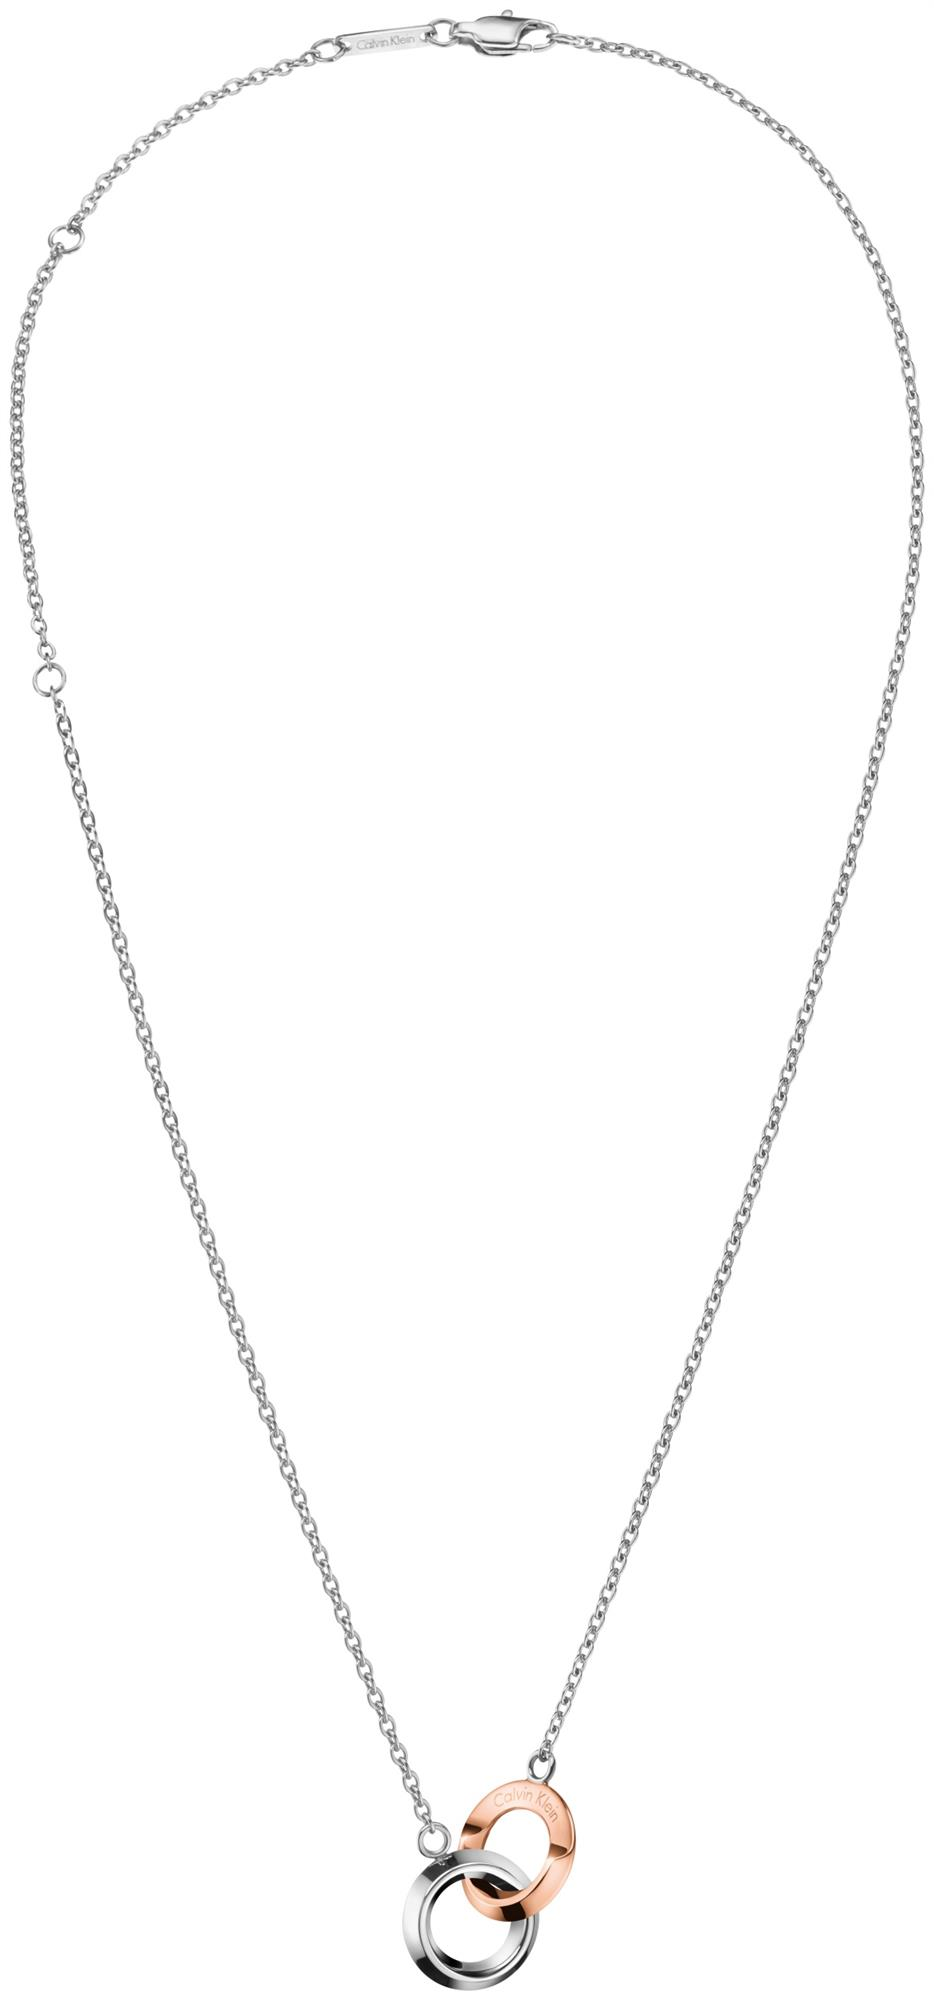 Calvin Klein Beauty Silver Stainless Steel Ring Pendant